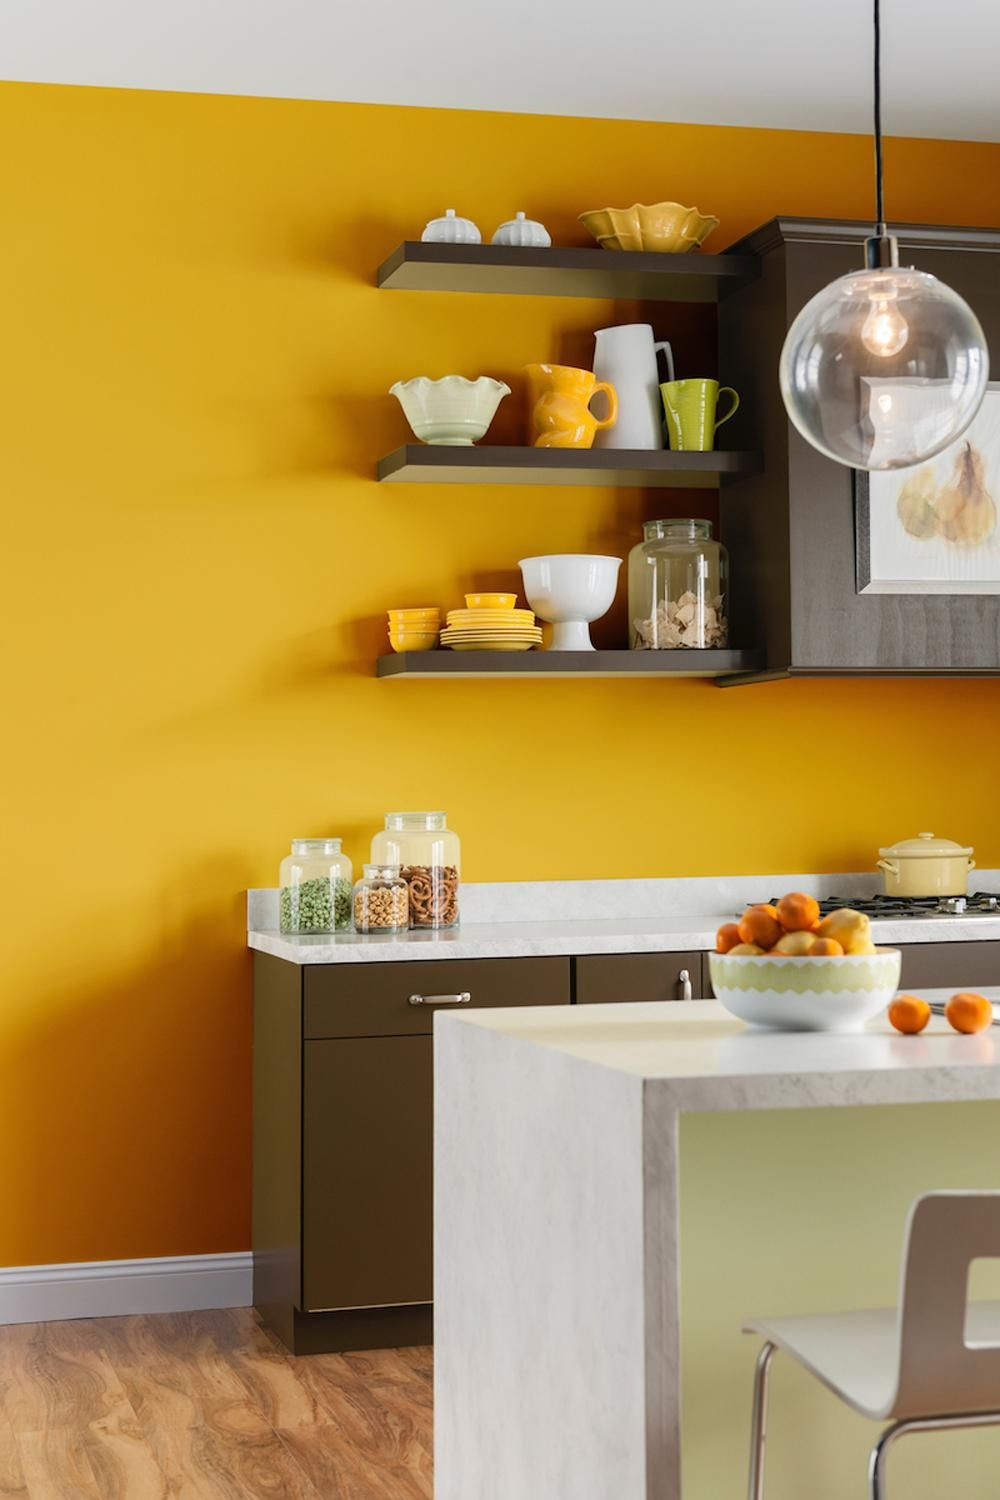 2017 Paint Colour Trends This Year Yellows Take A Turn Away From The Softer Tones Of And Move Towards Bolder More Dramatic Hues